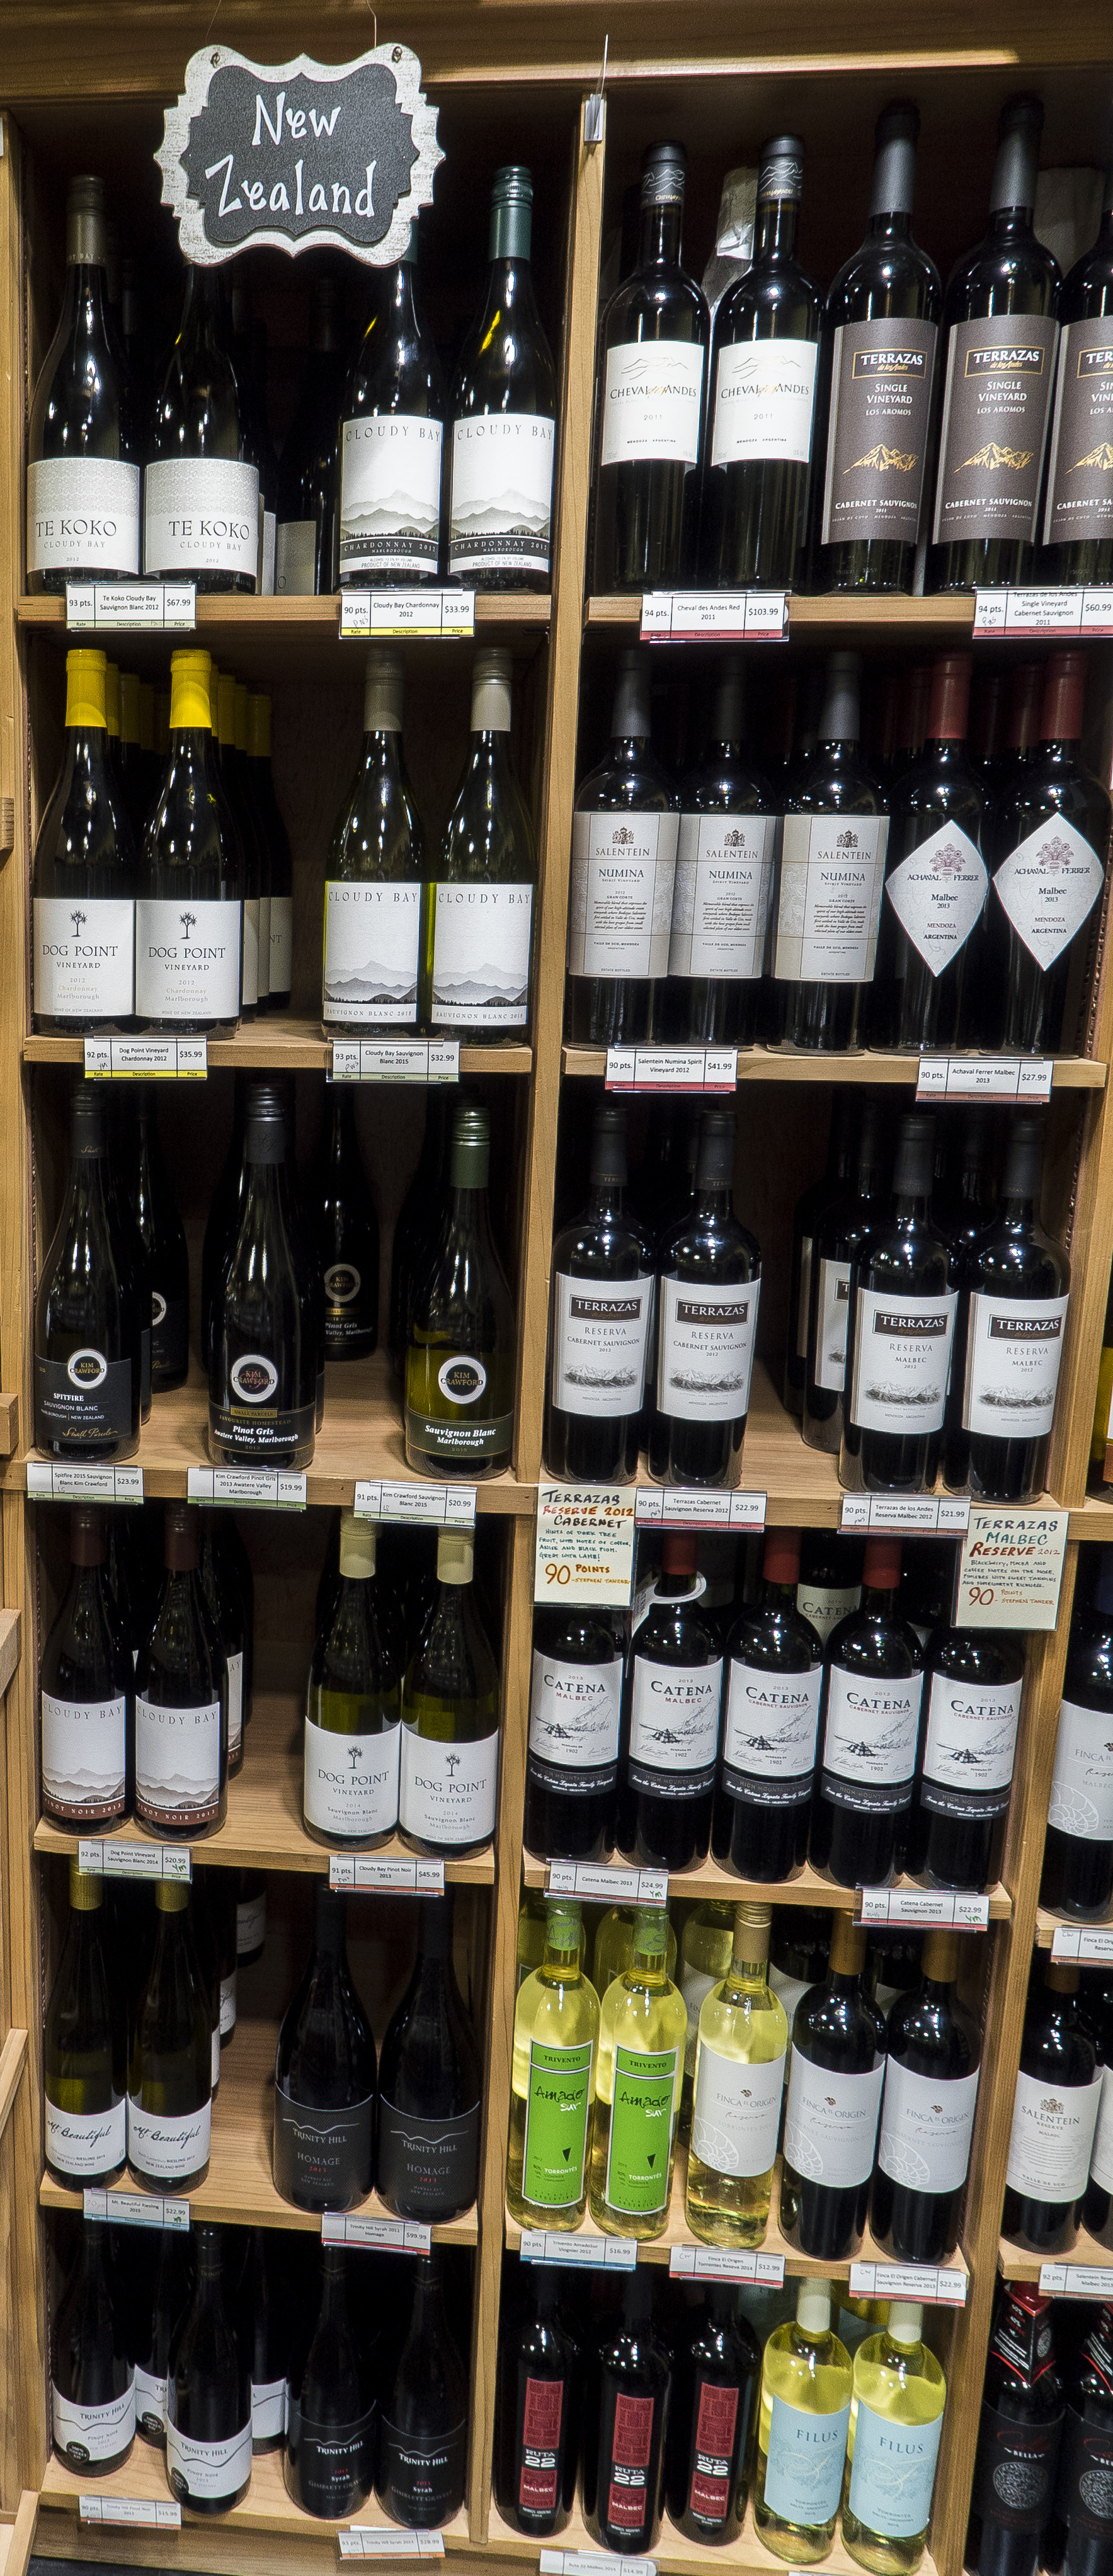 New Zealand Bottle section